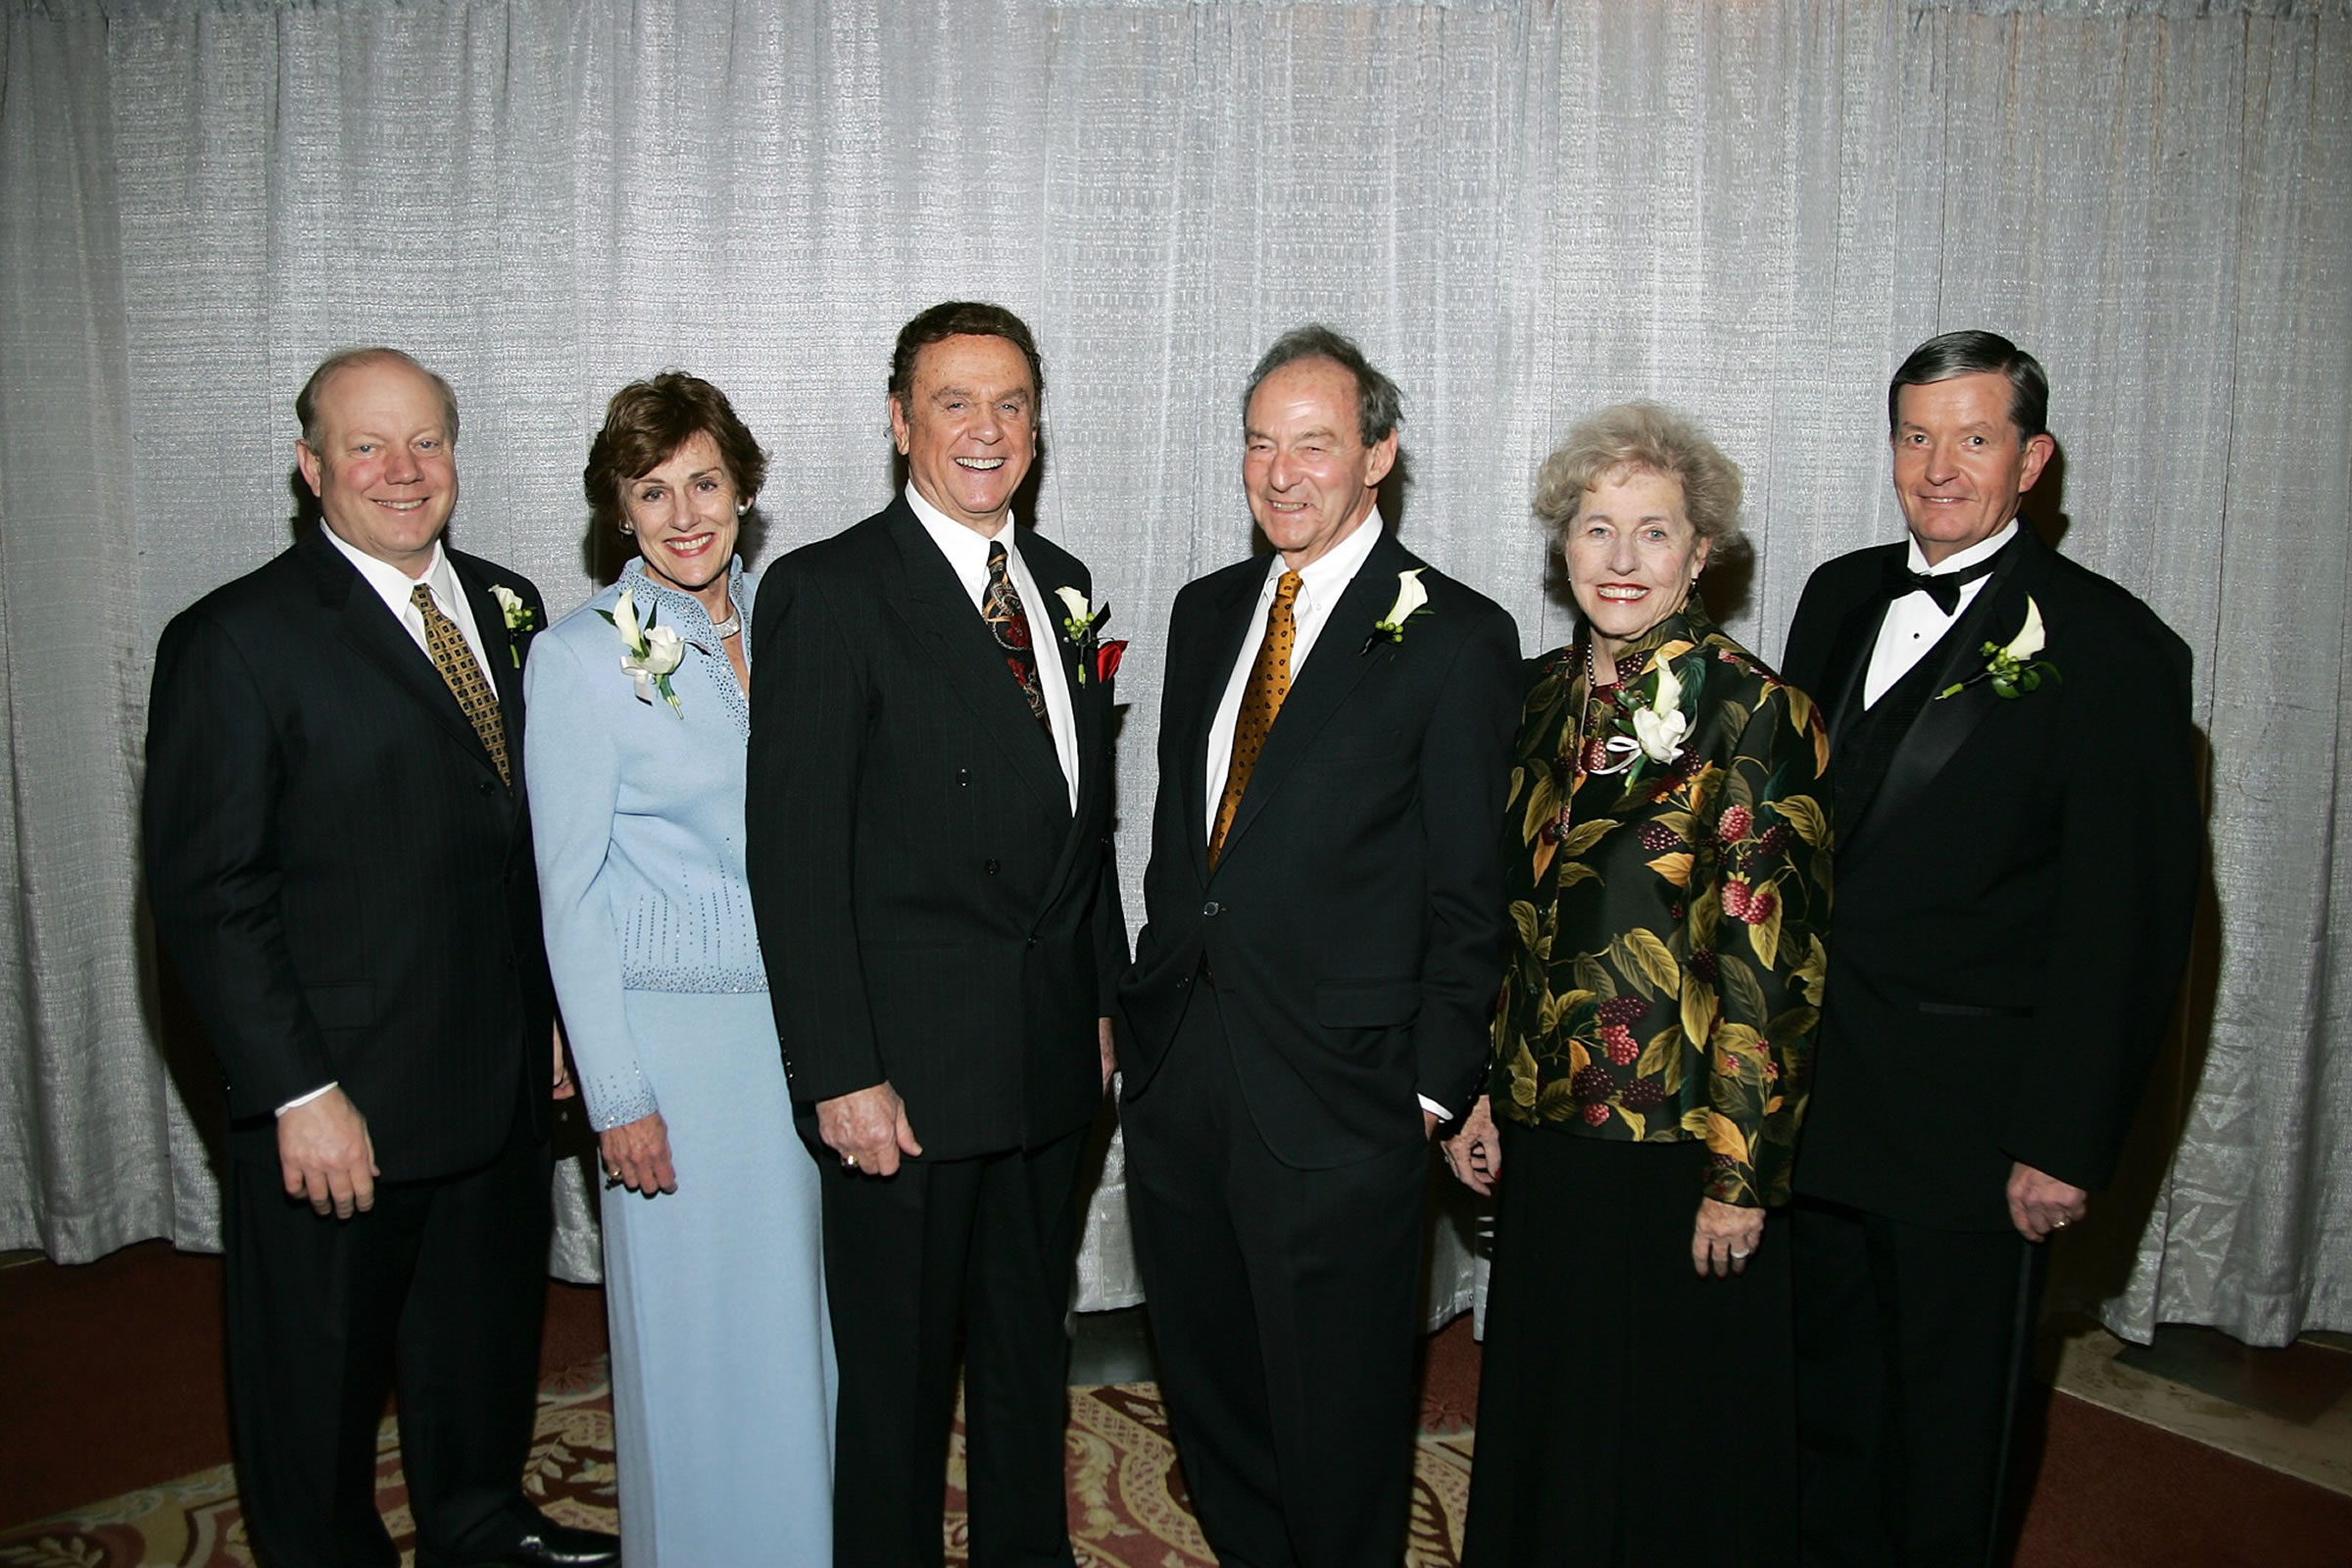 """Left to Right: Larry H. Miller, Anne Cullimore Decker, Bill Marcroft, ALonzo """"Lon"""" Watson, Rhoda Ramsey and Cecil O. Samuelson."""